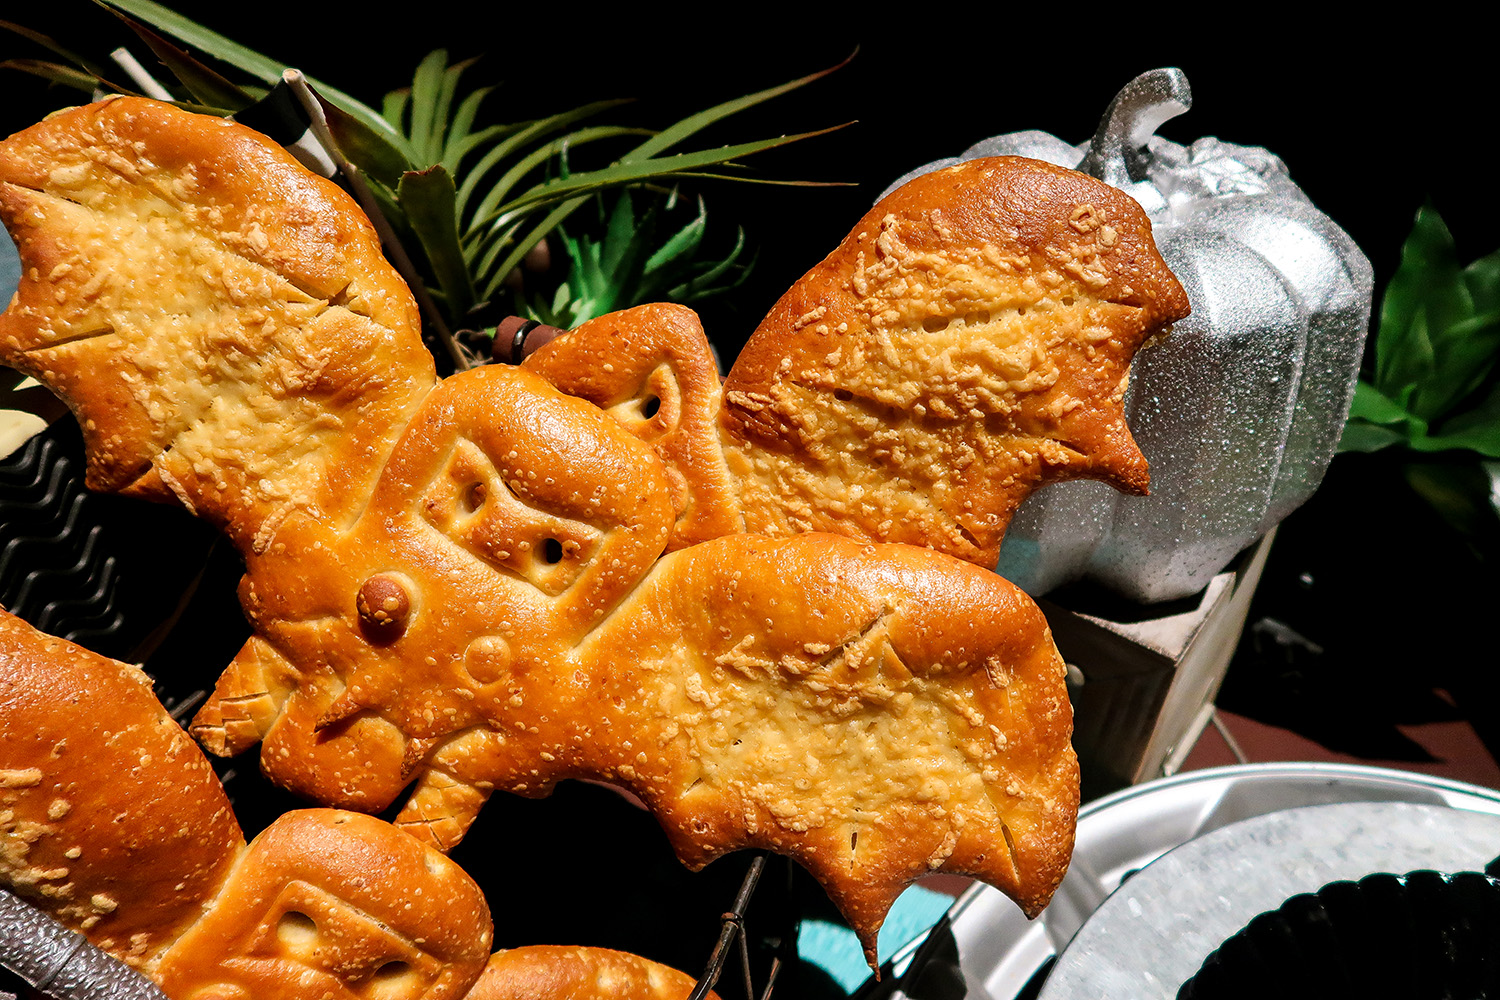 This Bat Bread is a MUST eat at Disneyland's Halloween 2017!